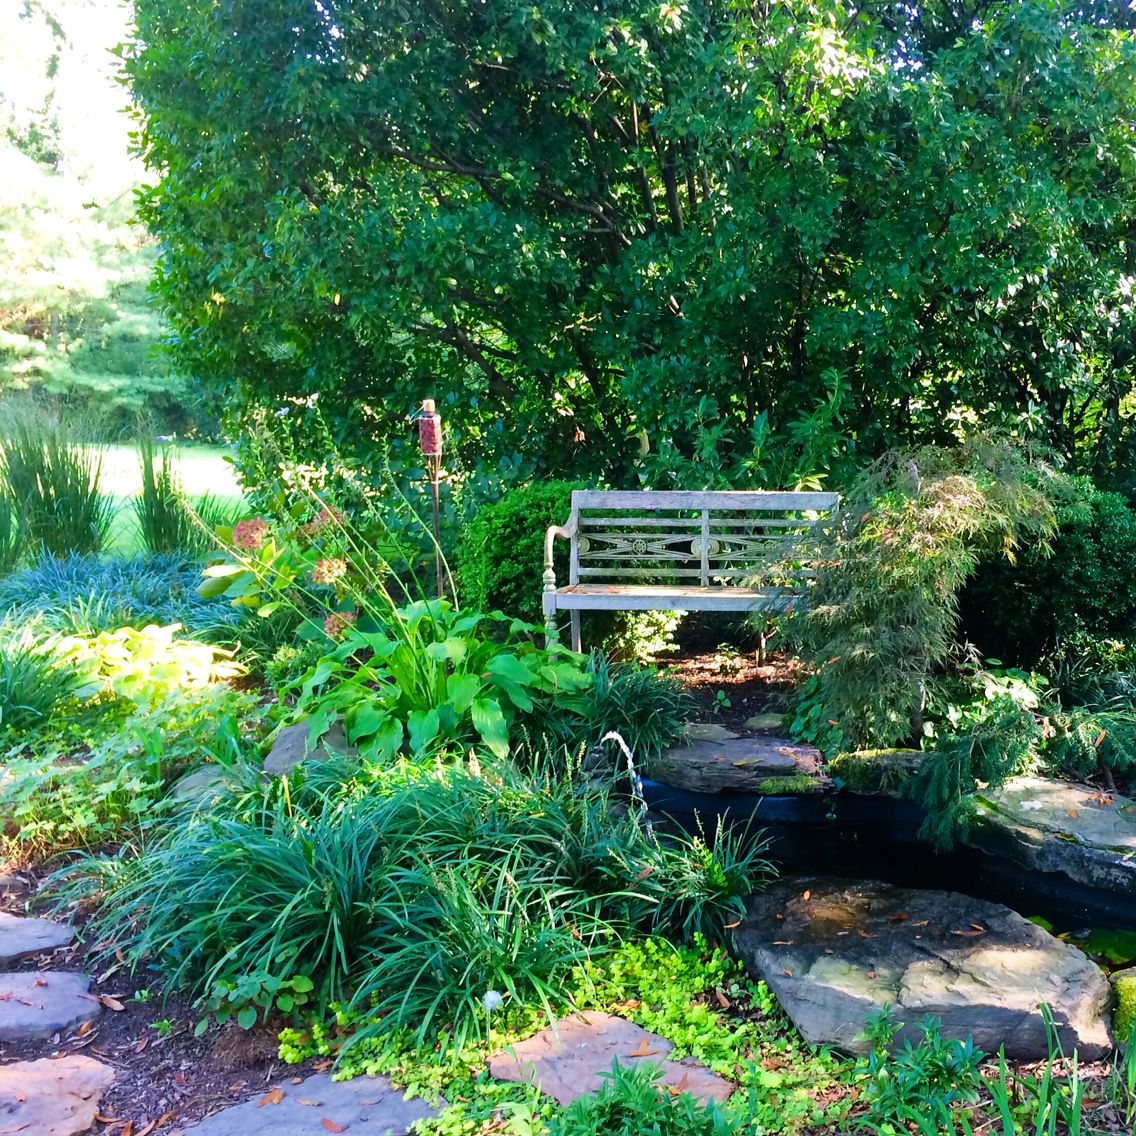 Small Garden Secrets: Backyard Garden Oasis With Fountain And Pond With Frogs